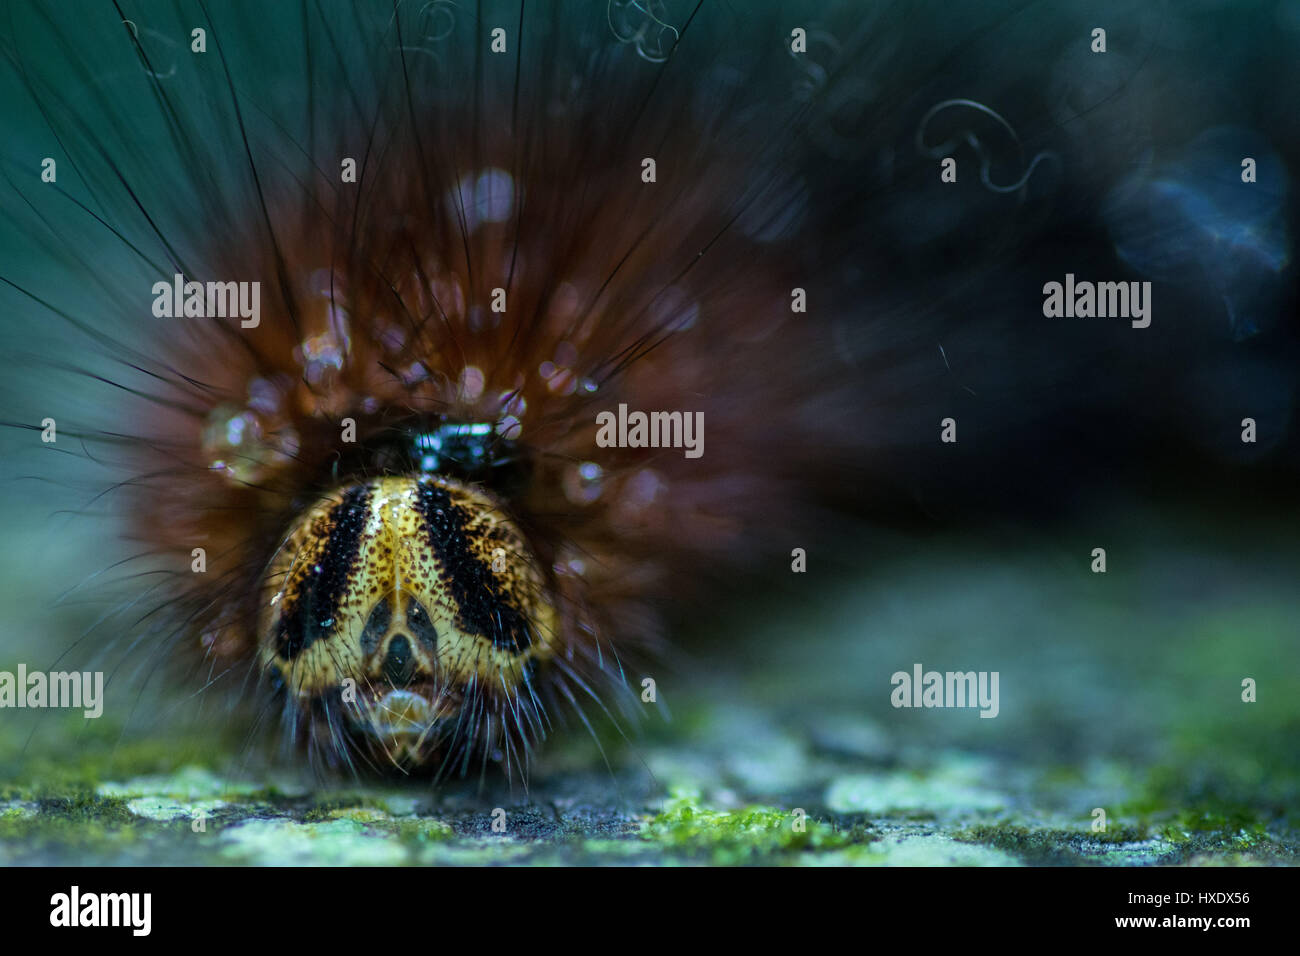 Close up macro of the face of a Hairy Gypsy Moth Caterpillar. Stock Photo